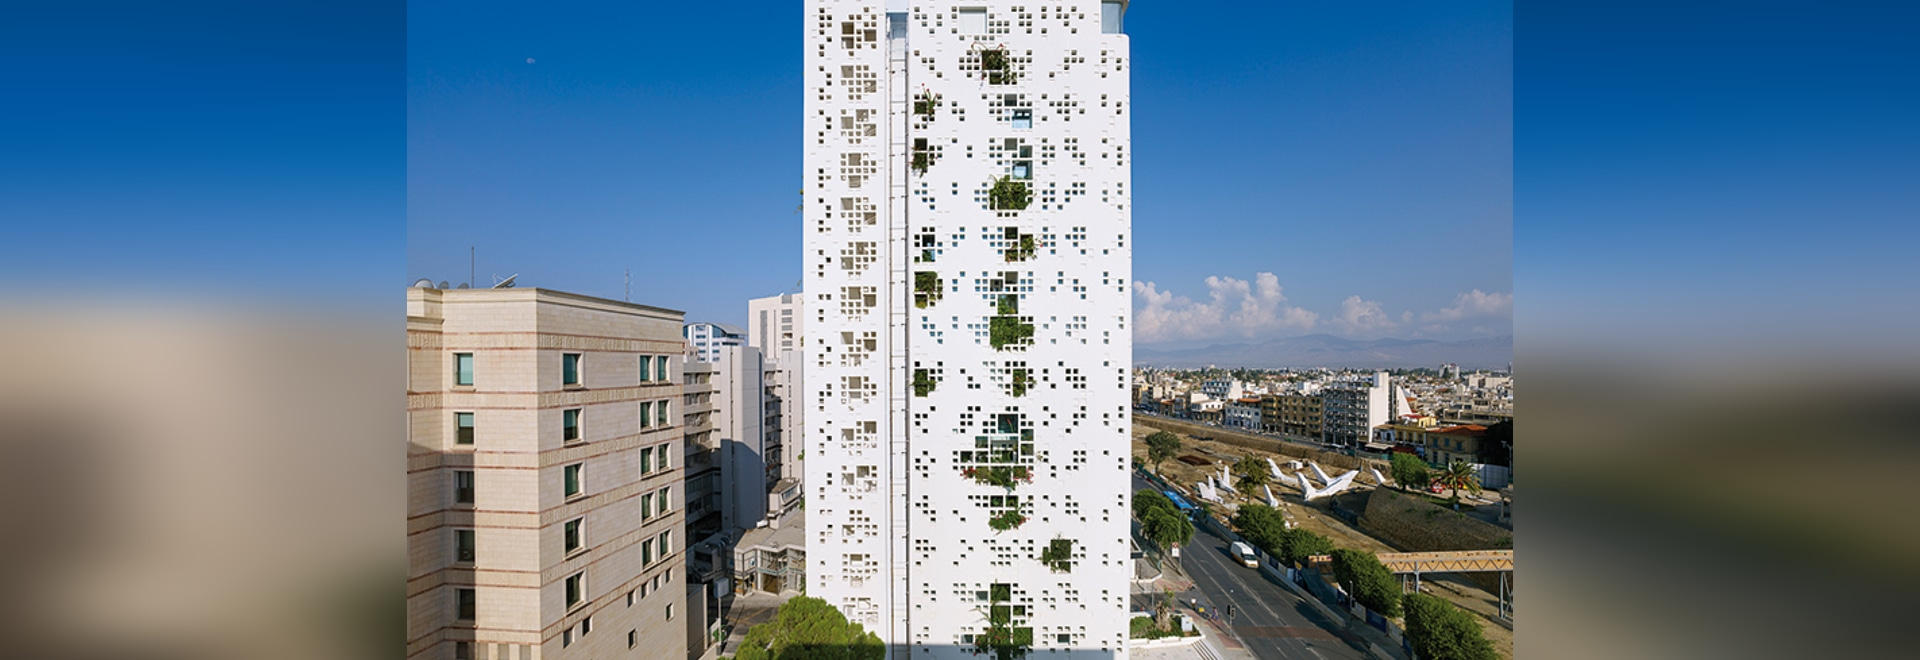 design architect: ateliers jean nouvel; local collaborating architects: takis sophocleous architects